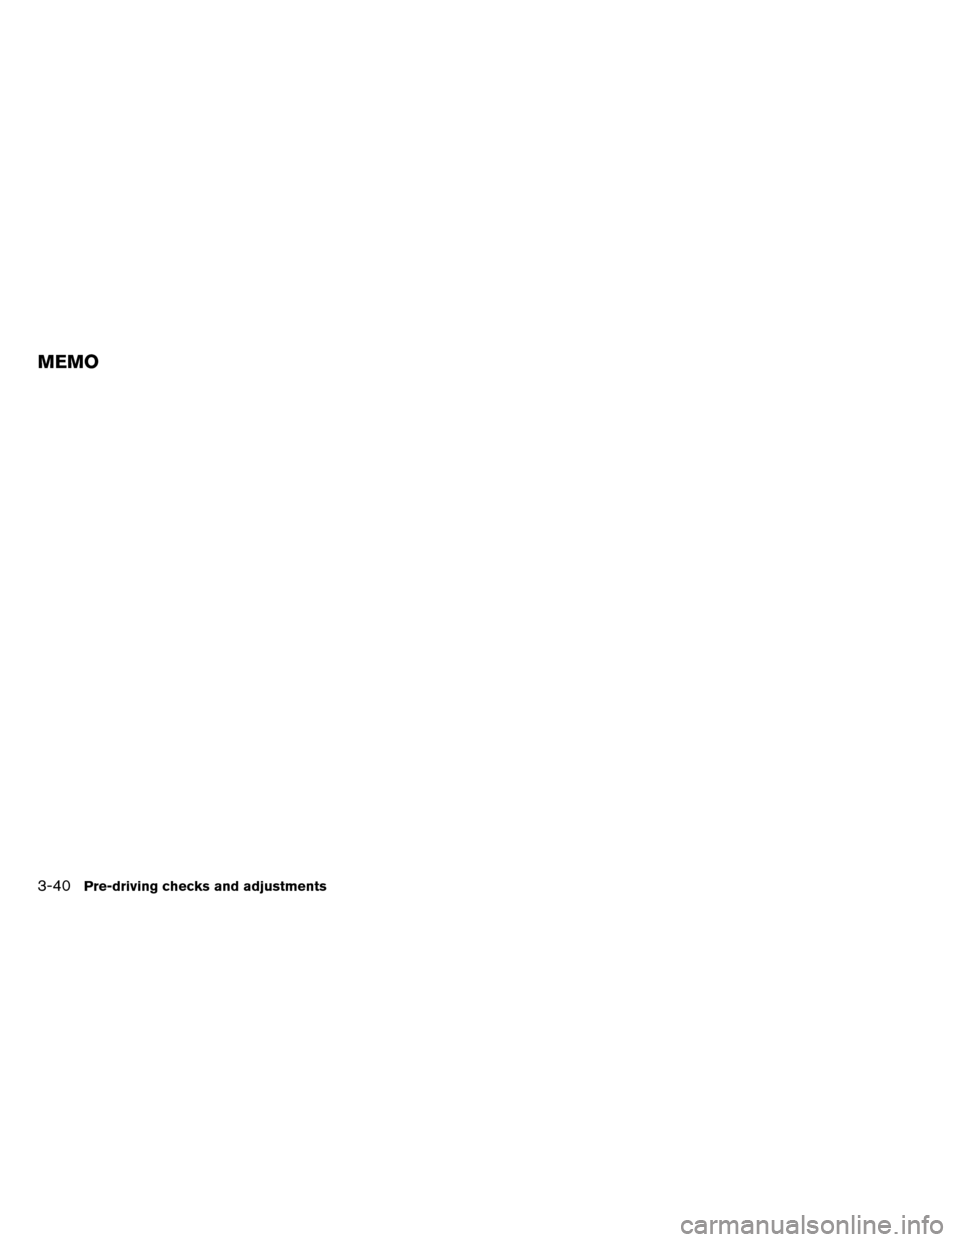 NISSAN ARMADA 2013 1.G Owners Manual MEMO 3-40Pre-driving checks and adjustments